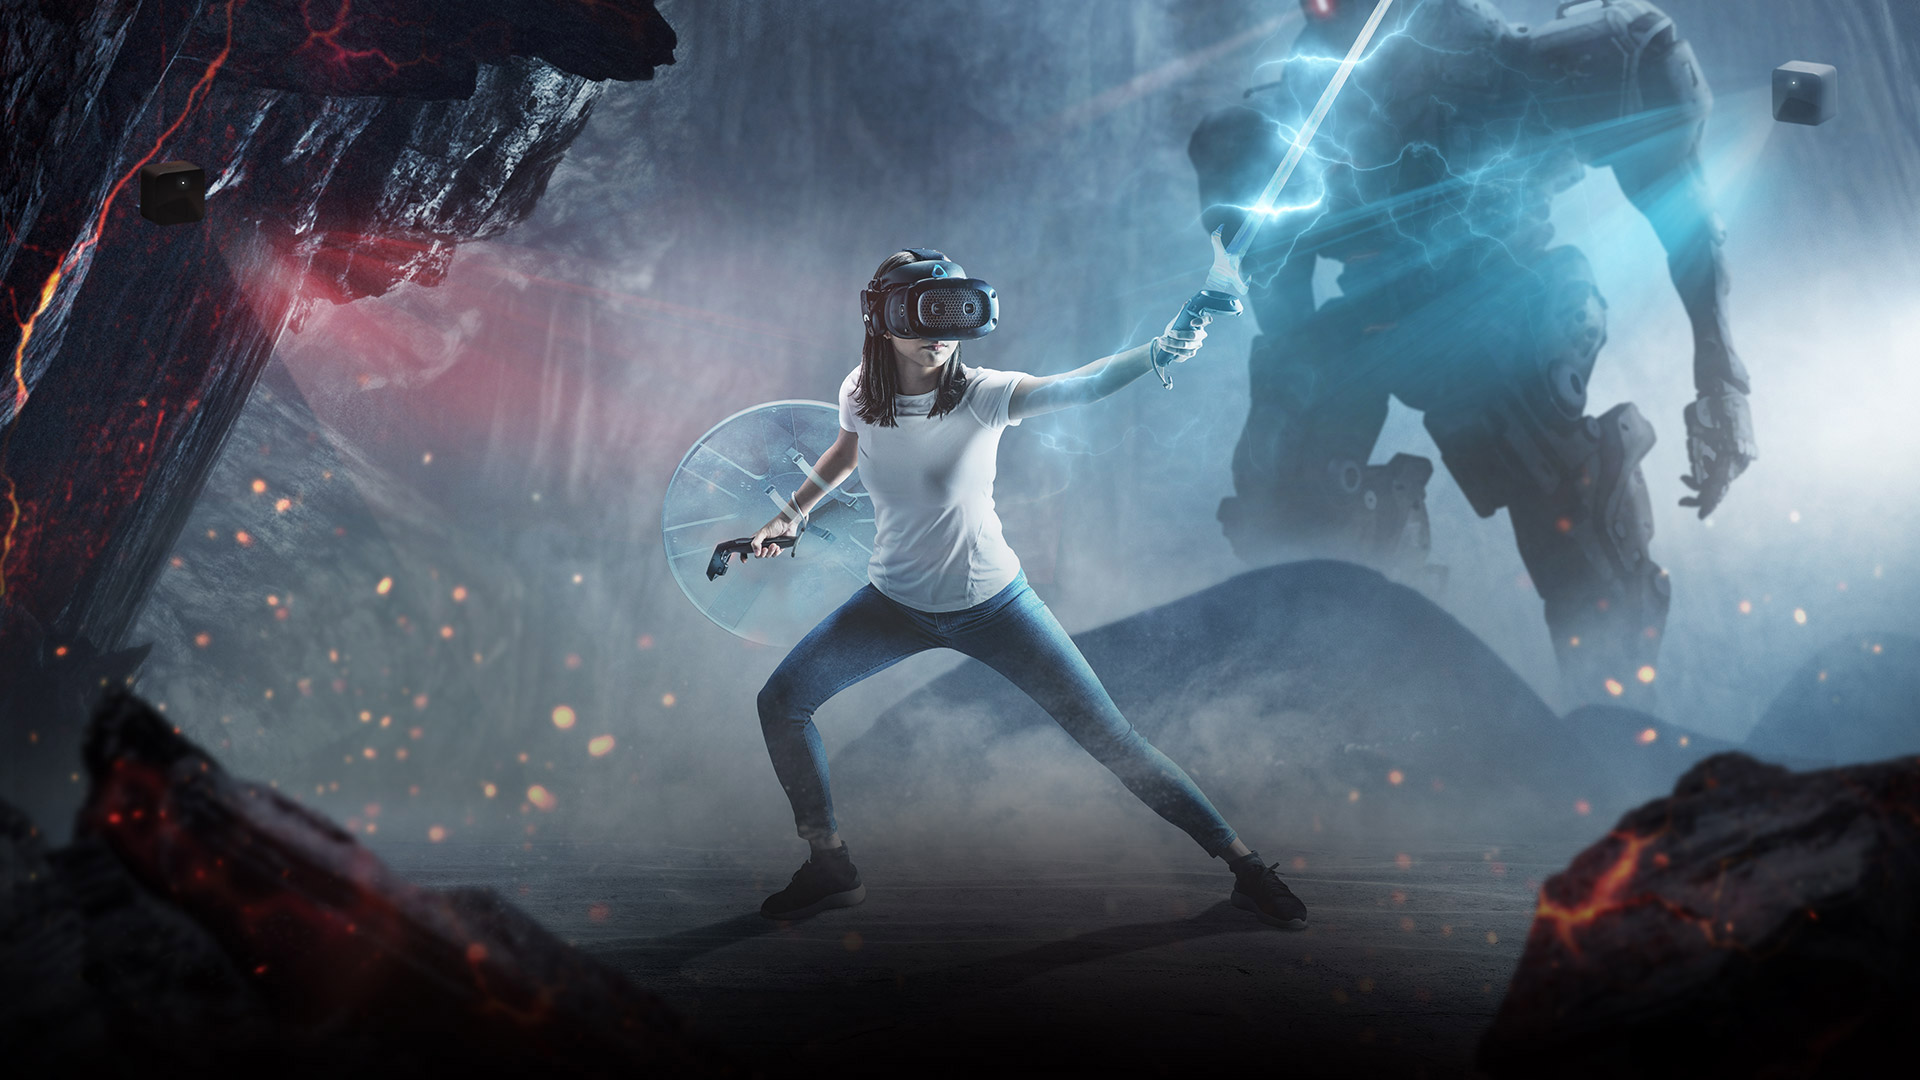 More Than 100 VR Games Have Exceeded $1 Million in Revenue